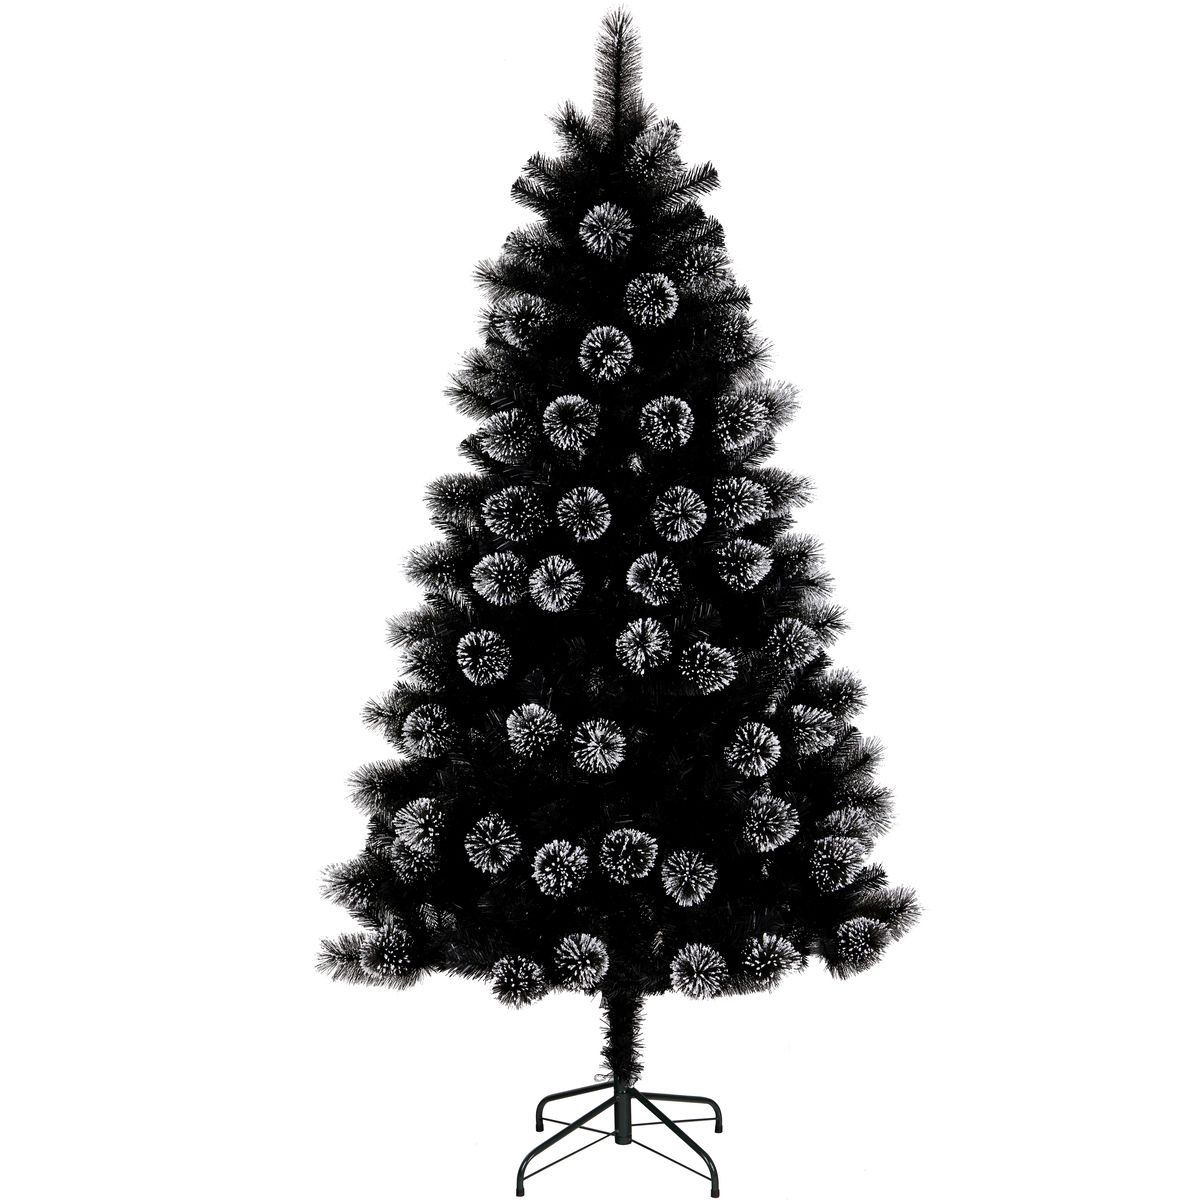 Chrismtas 195cm Bavarian Frosted Tree Black Big W 79 With Images Frosted Christmas Tree Frosted Tree Christmas Cover